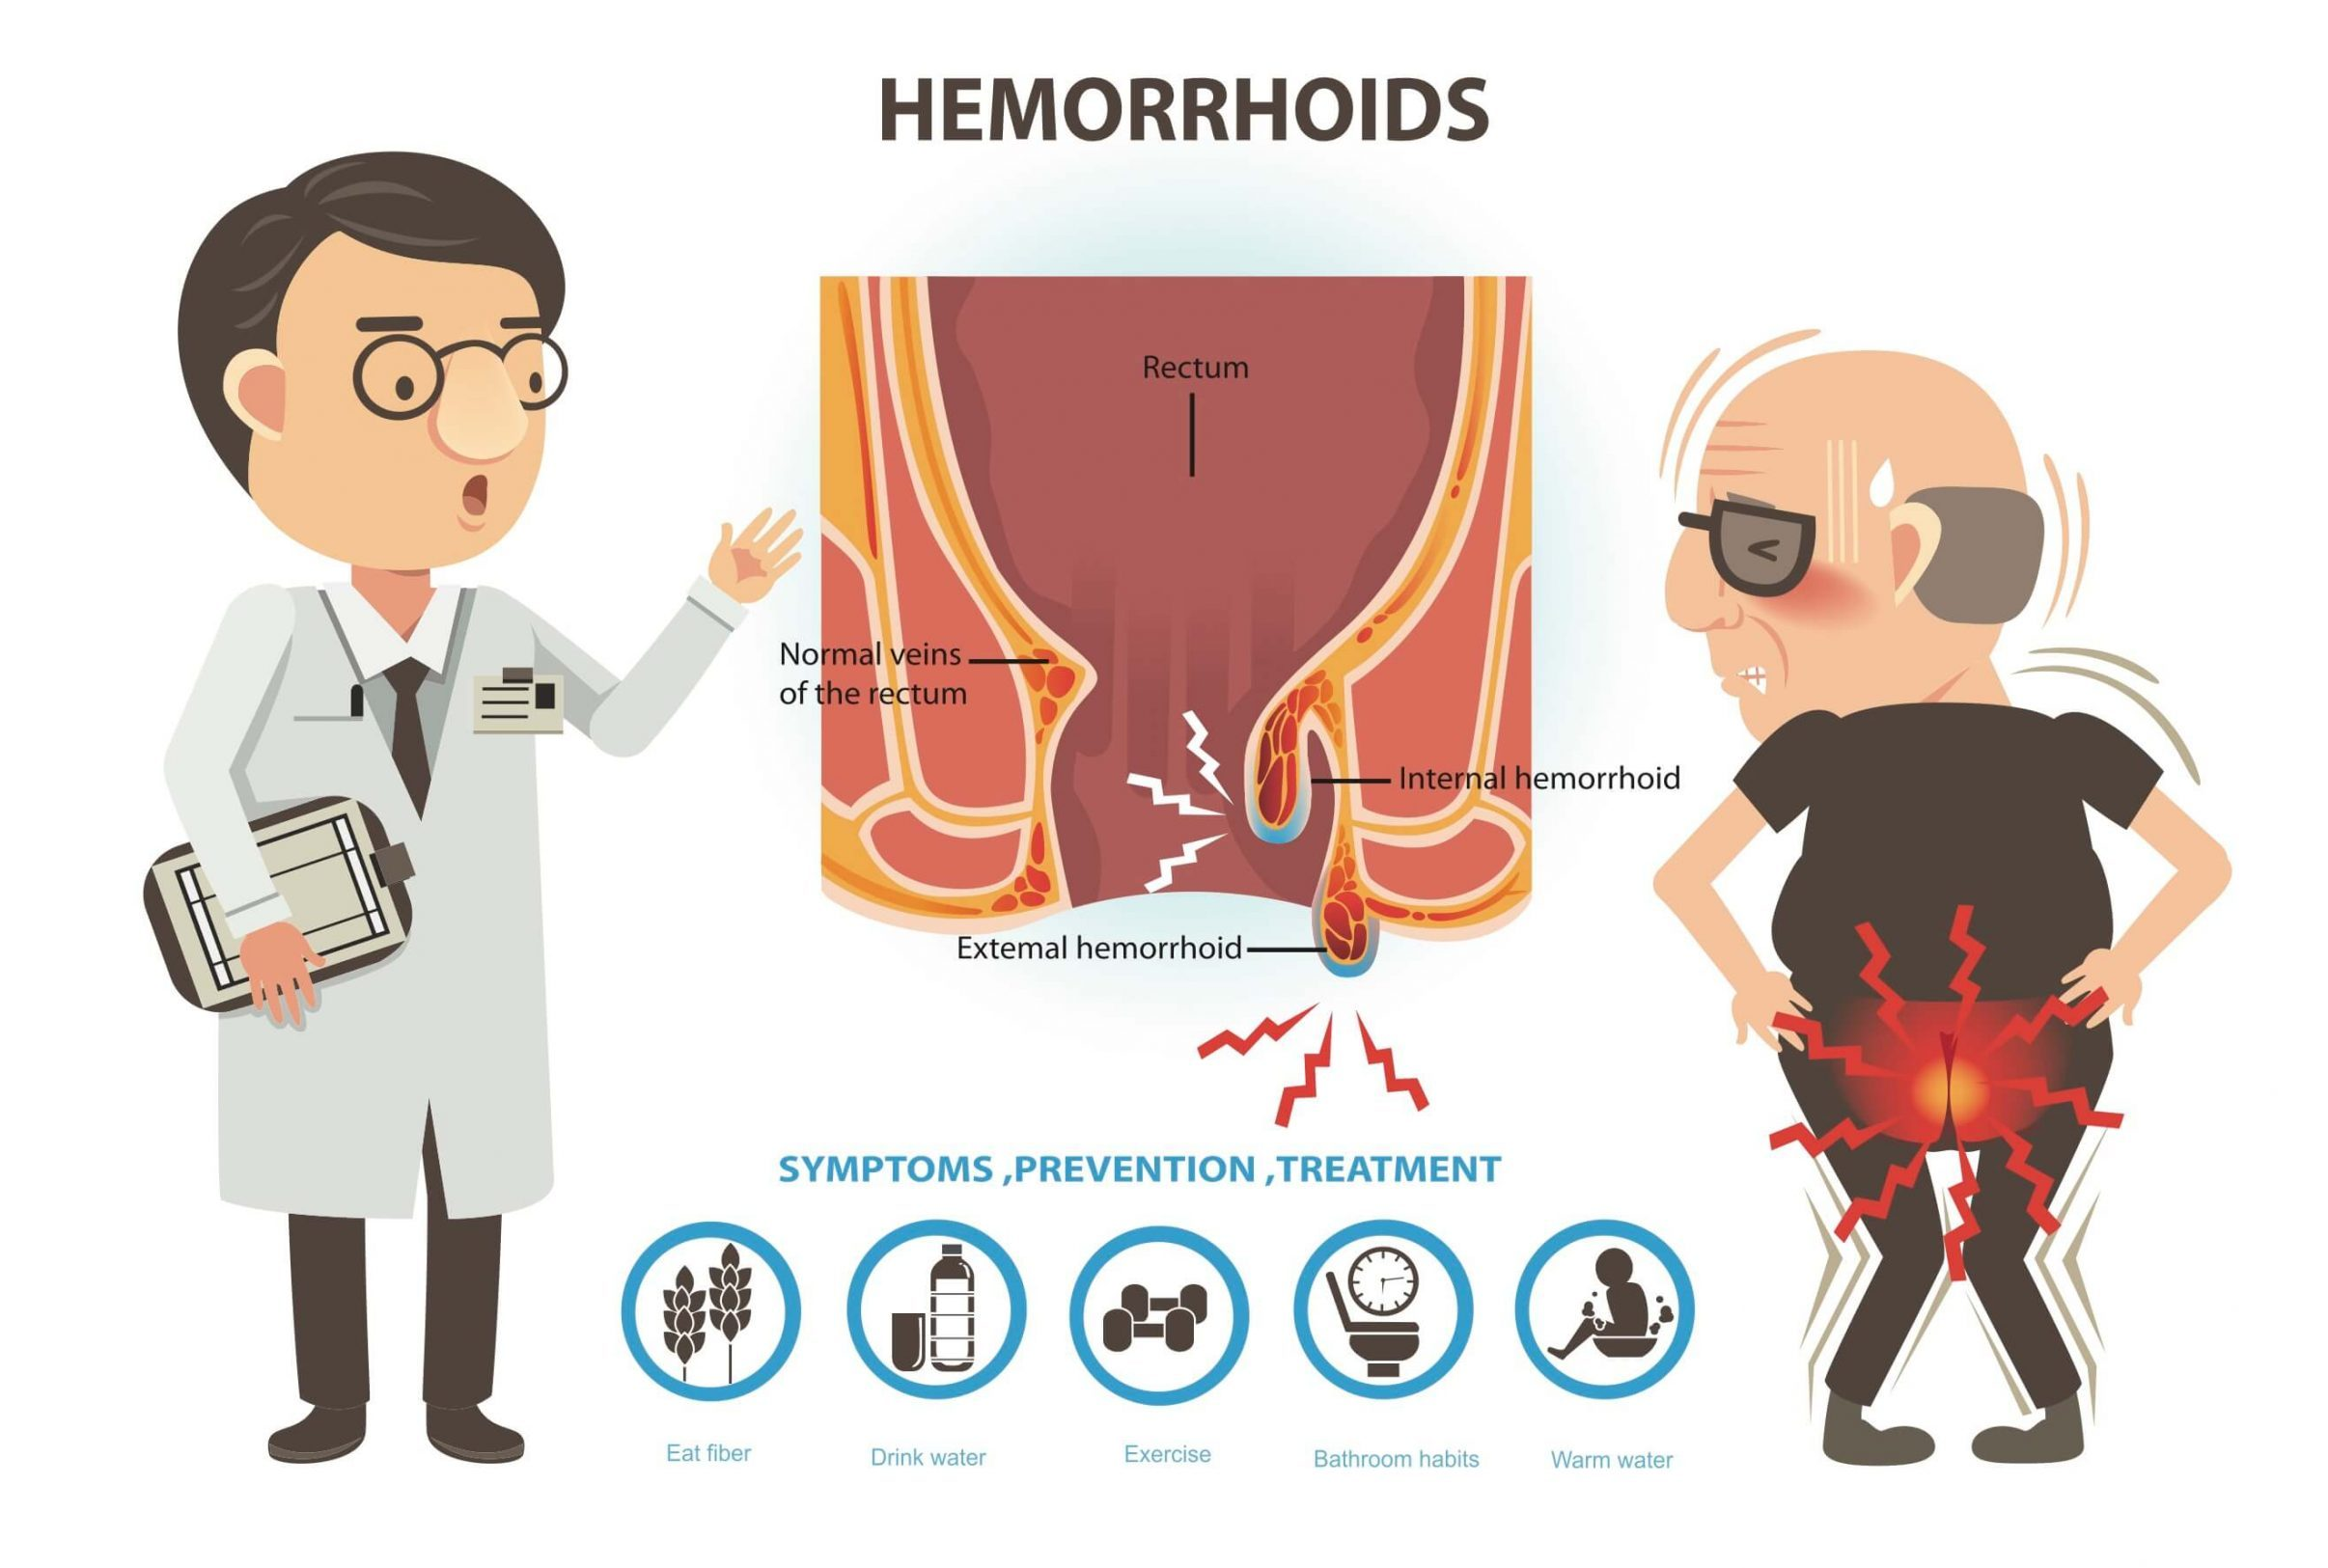 Causes, Signs And Symptoms of Piles | What Are Piles Hemorrhoids?